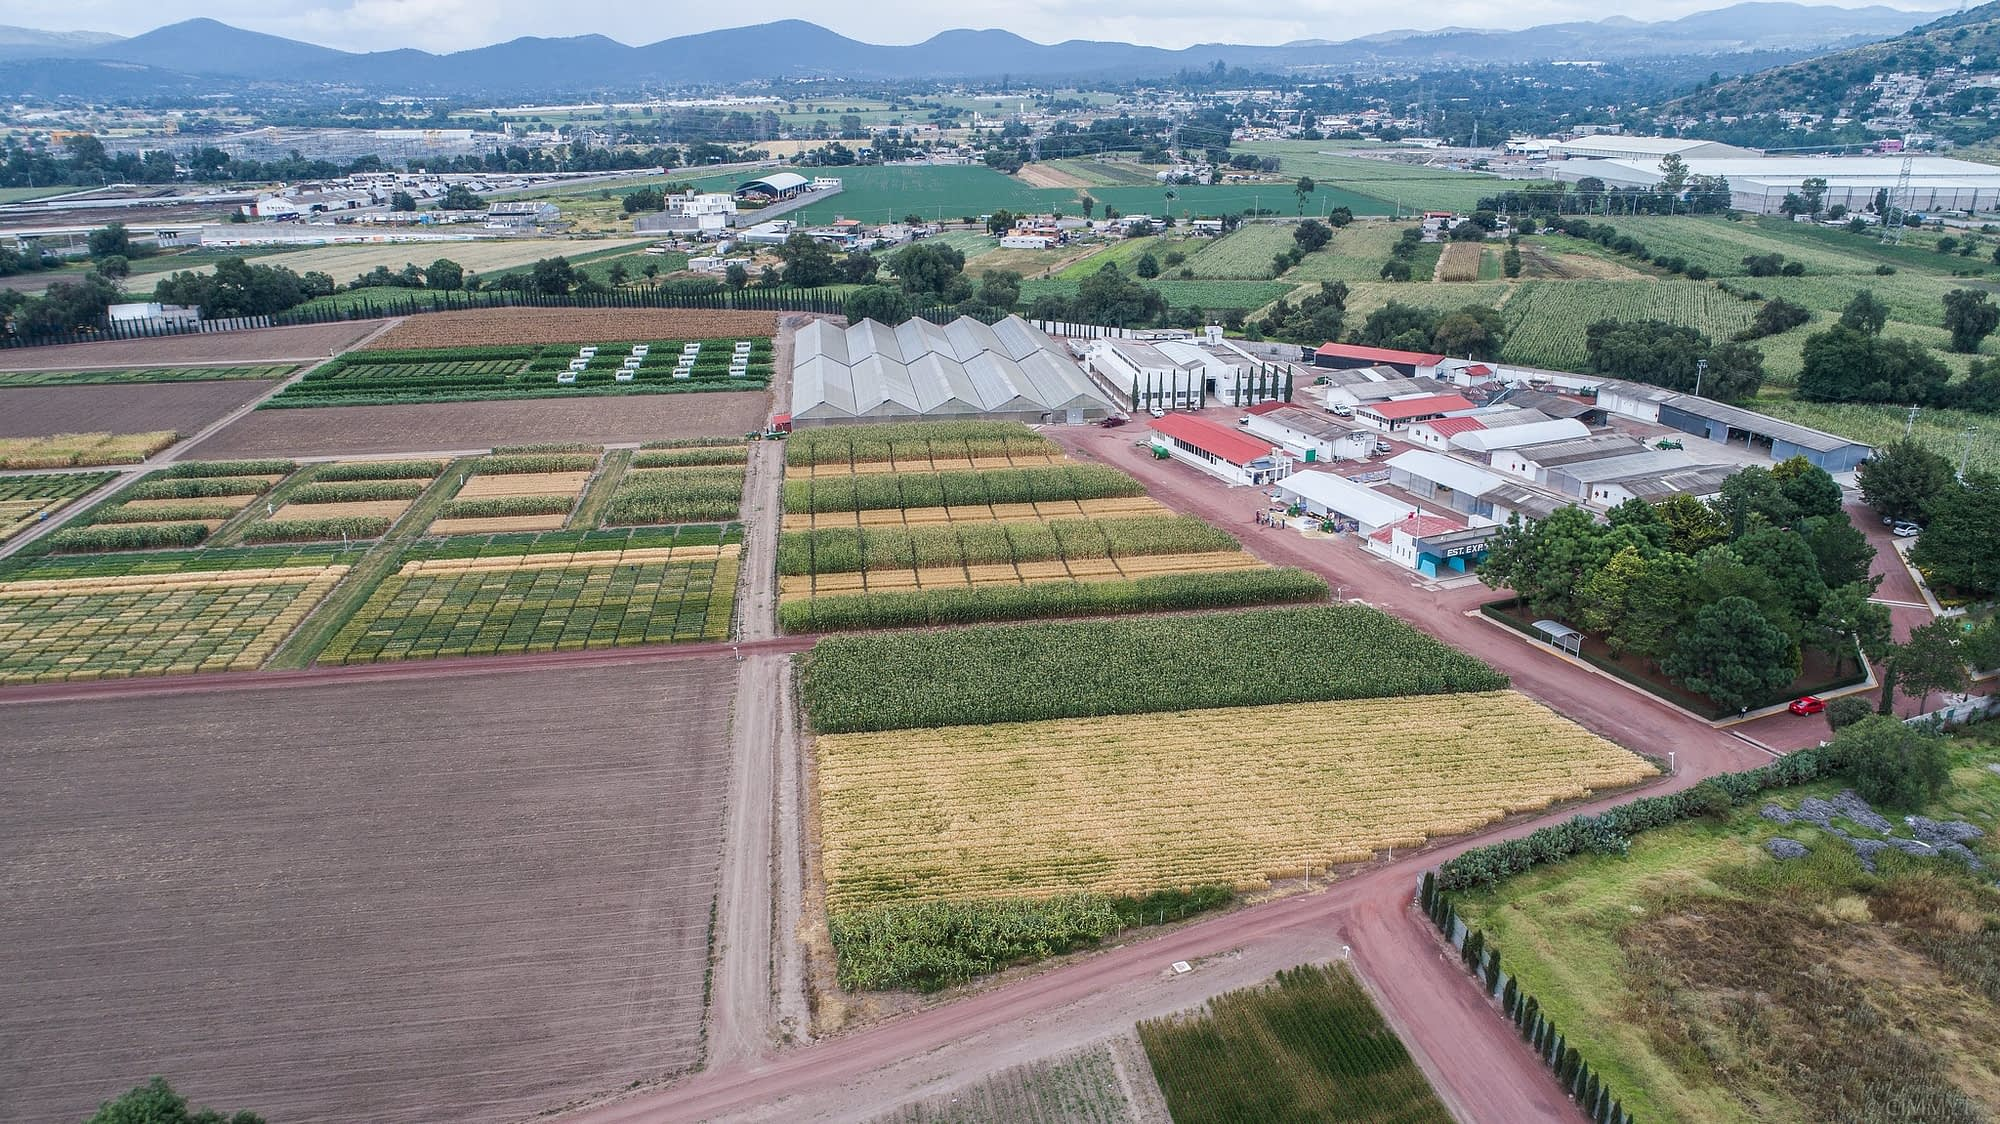 Maize and wheat fields at CIMMYT's El Batán experimental station.